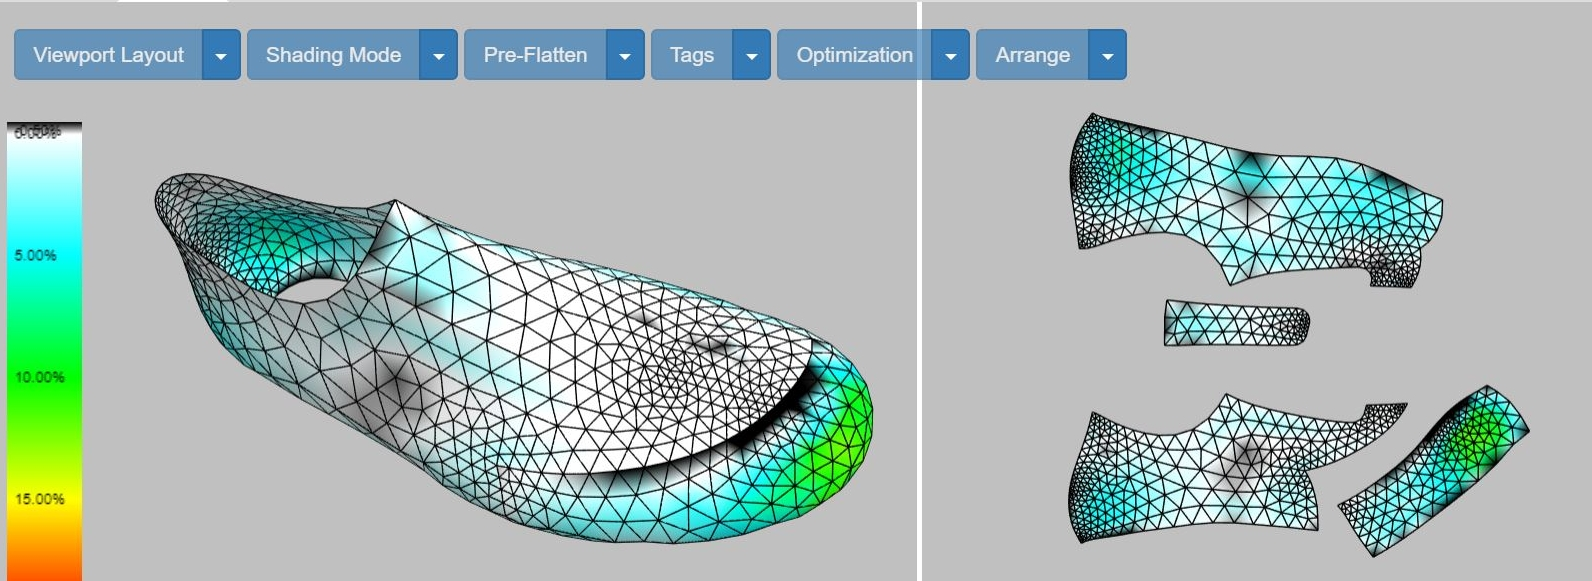 3D design and digital automation tools enable on-demand production of garments and shoes.   Isn't it time to take a closer look?